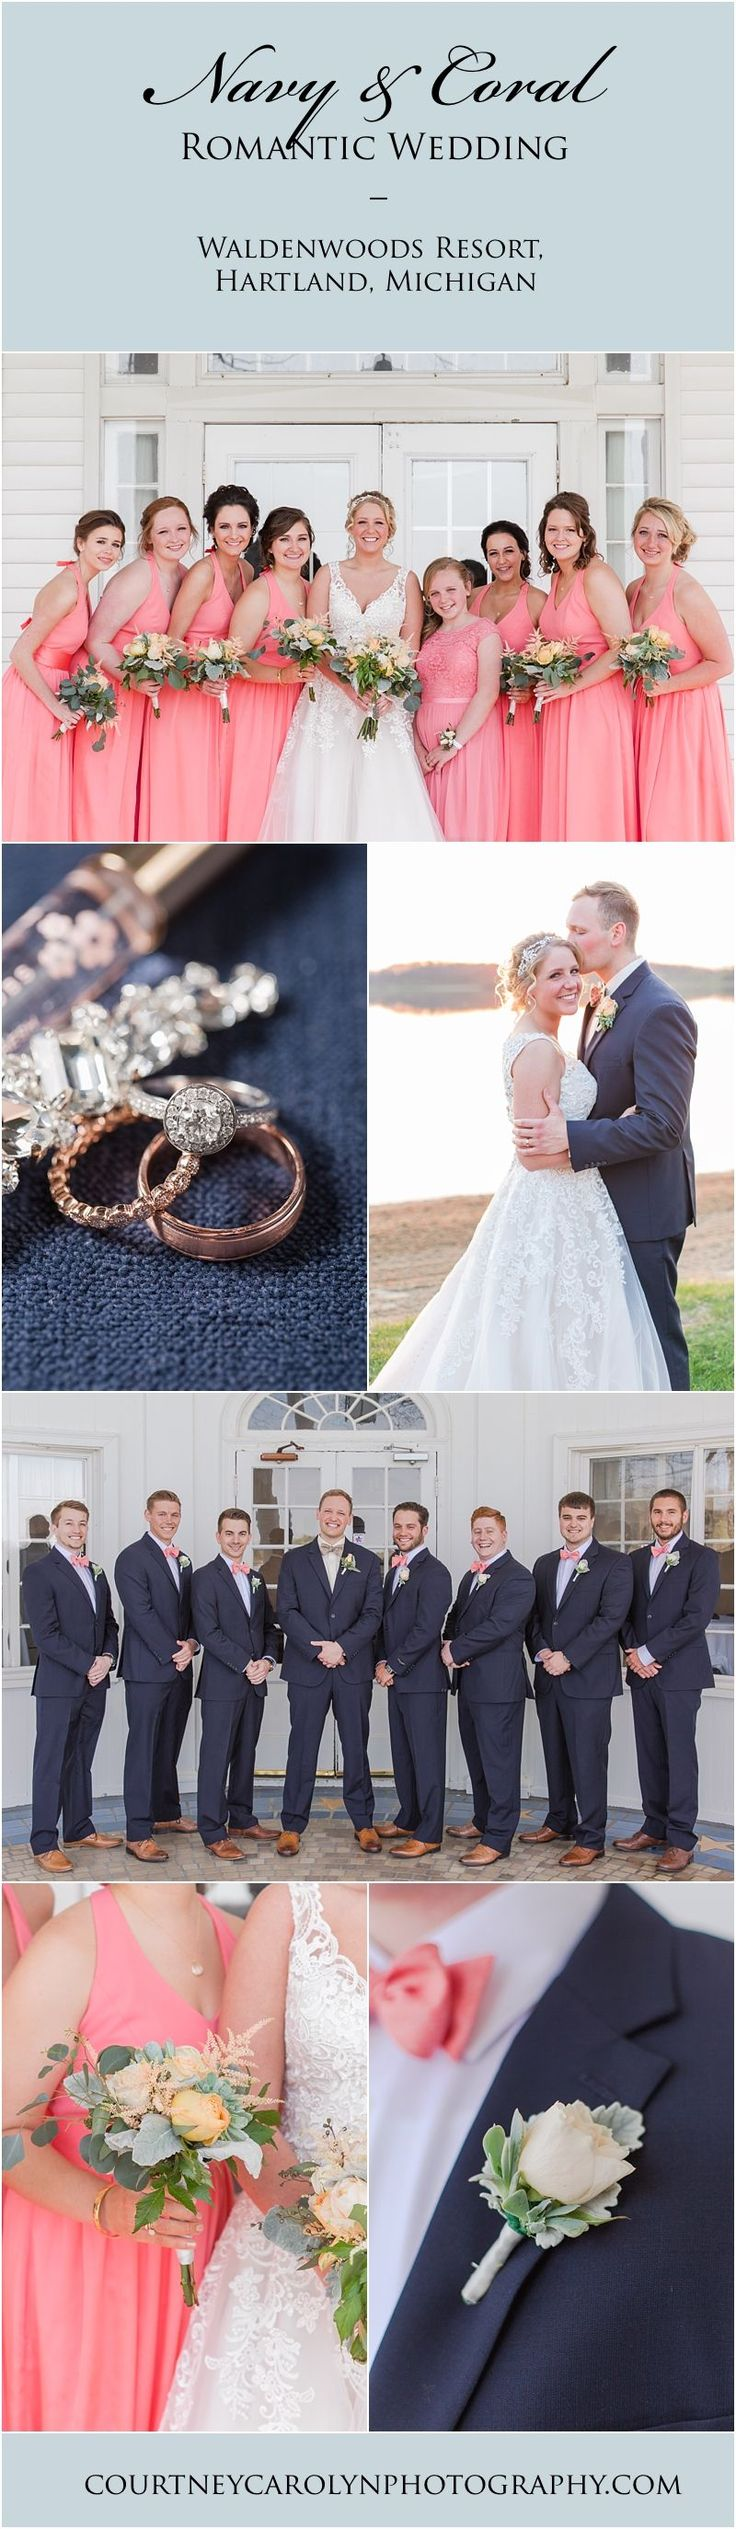 Navel, Coral, and Gold wedding day inspiration. Bride wore beautiful lace dress, bridesmaids wore coral, and the groomsmen wore navy suits with coral bow ties at a waterfront ceremony at Waldenwoods Resort in Hartland, Michigan. #CoralWeddingIdeas